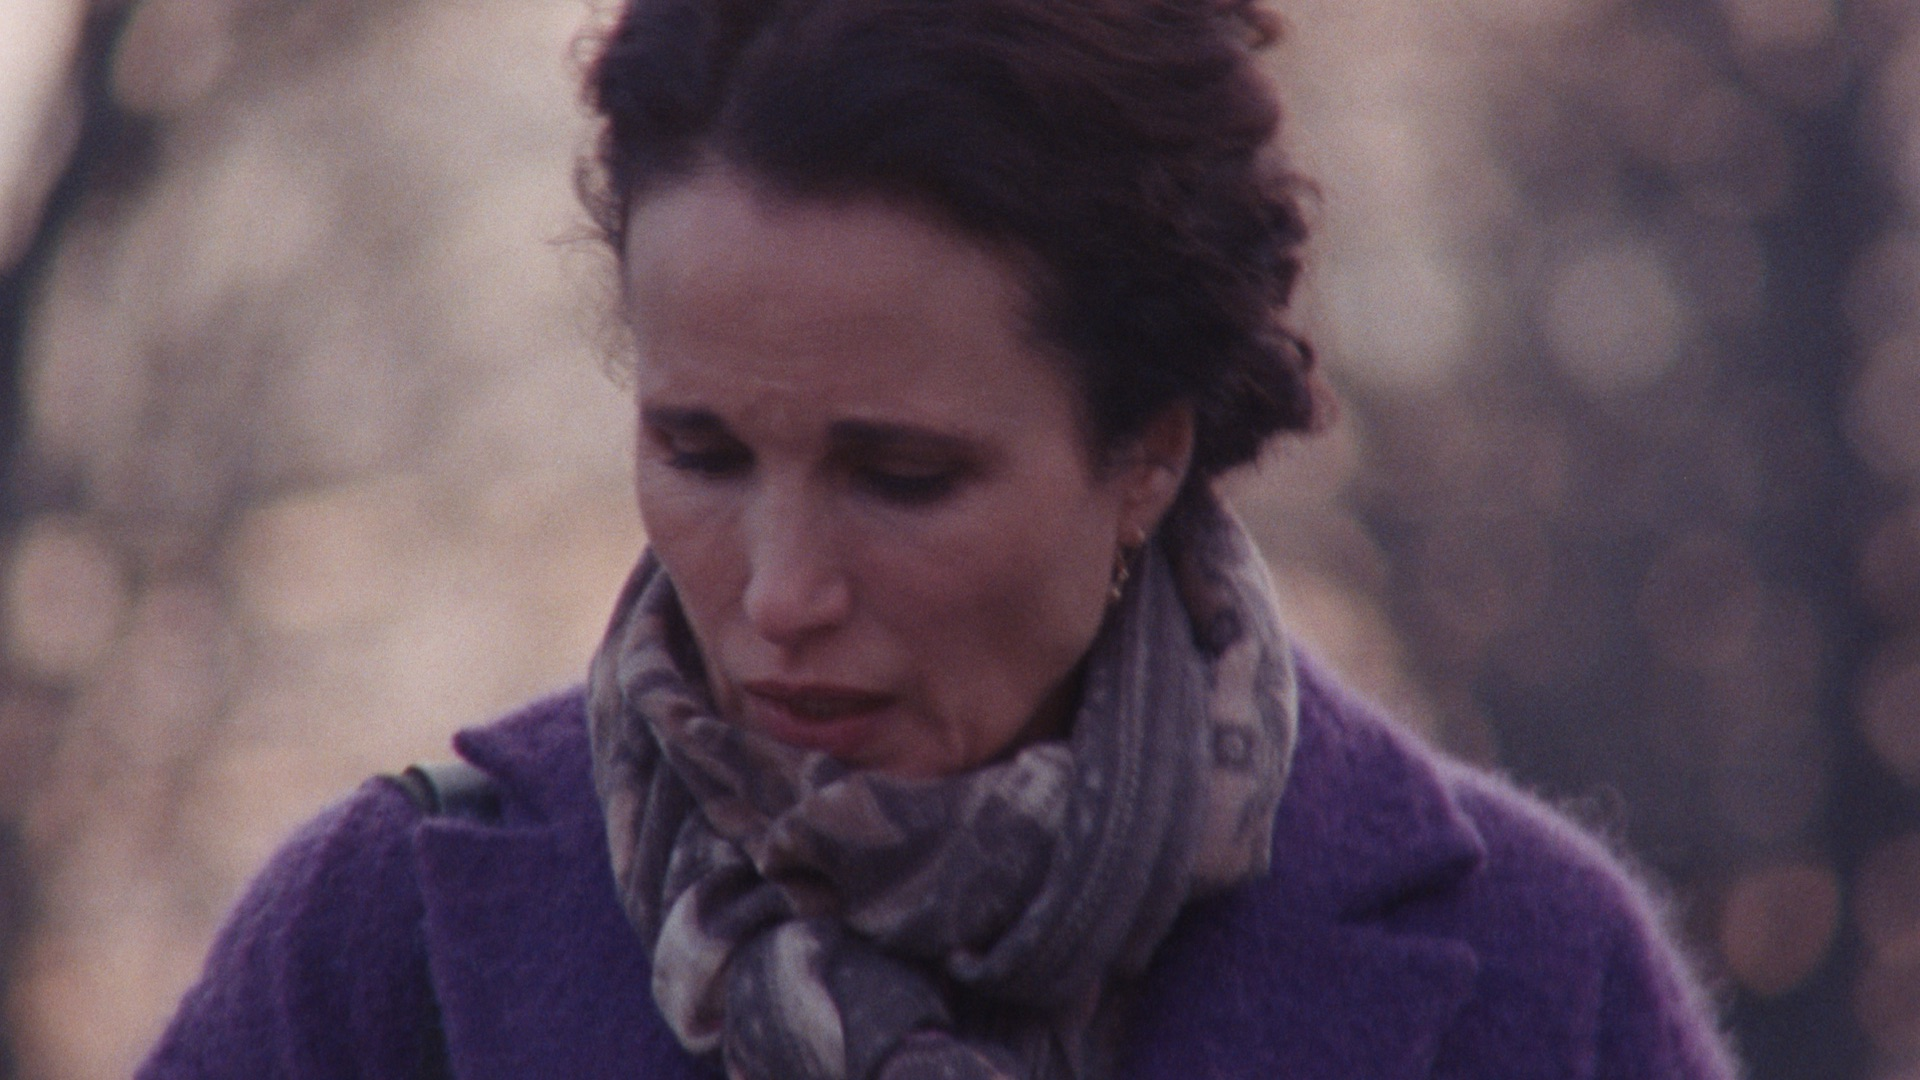 LOVE_AFTER_LIVE_STILL1_Andie_MacDowell_in_Love_After_Love_Photo_by_Chris_Teague.jpg